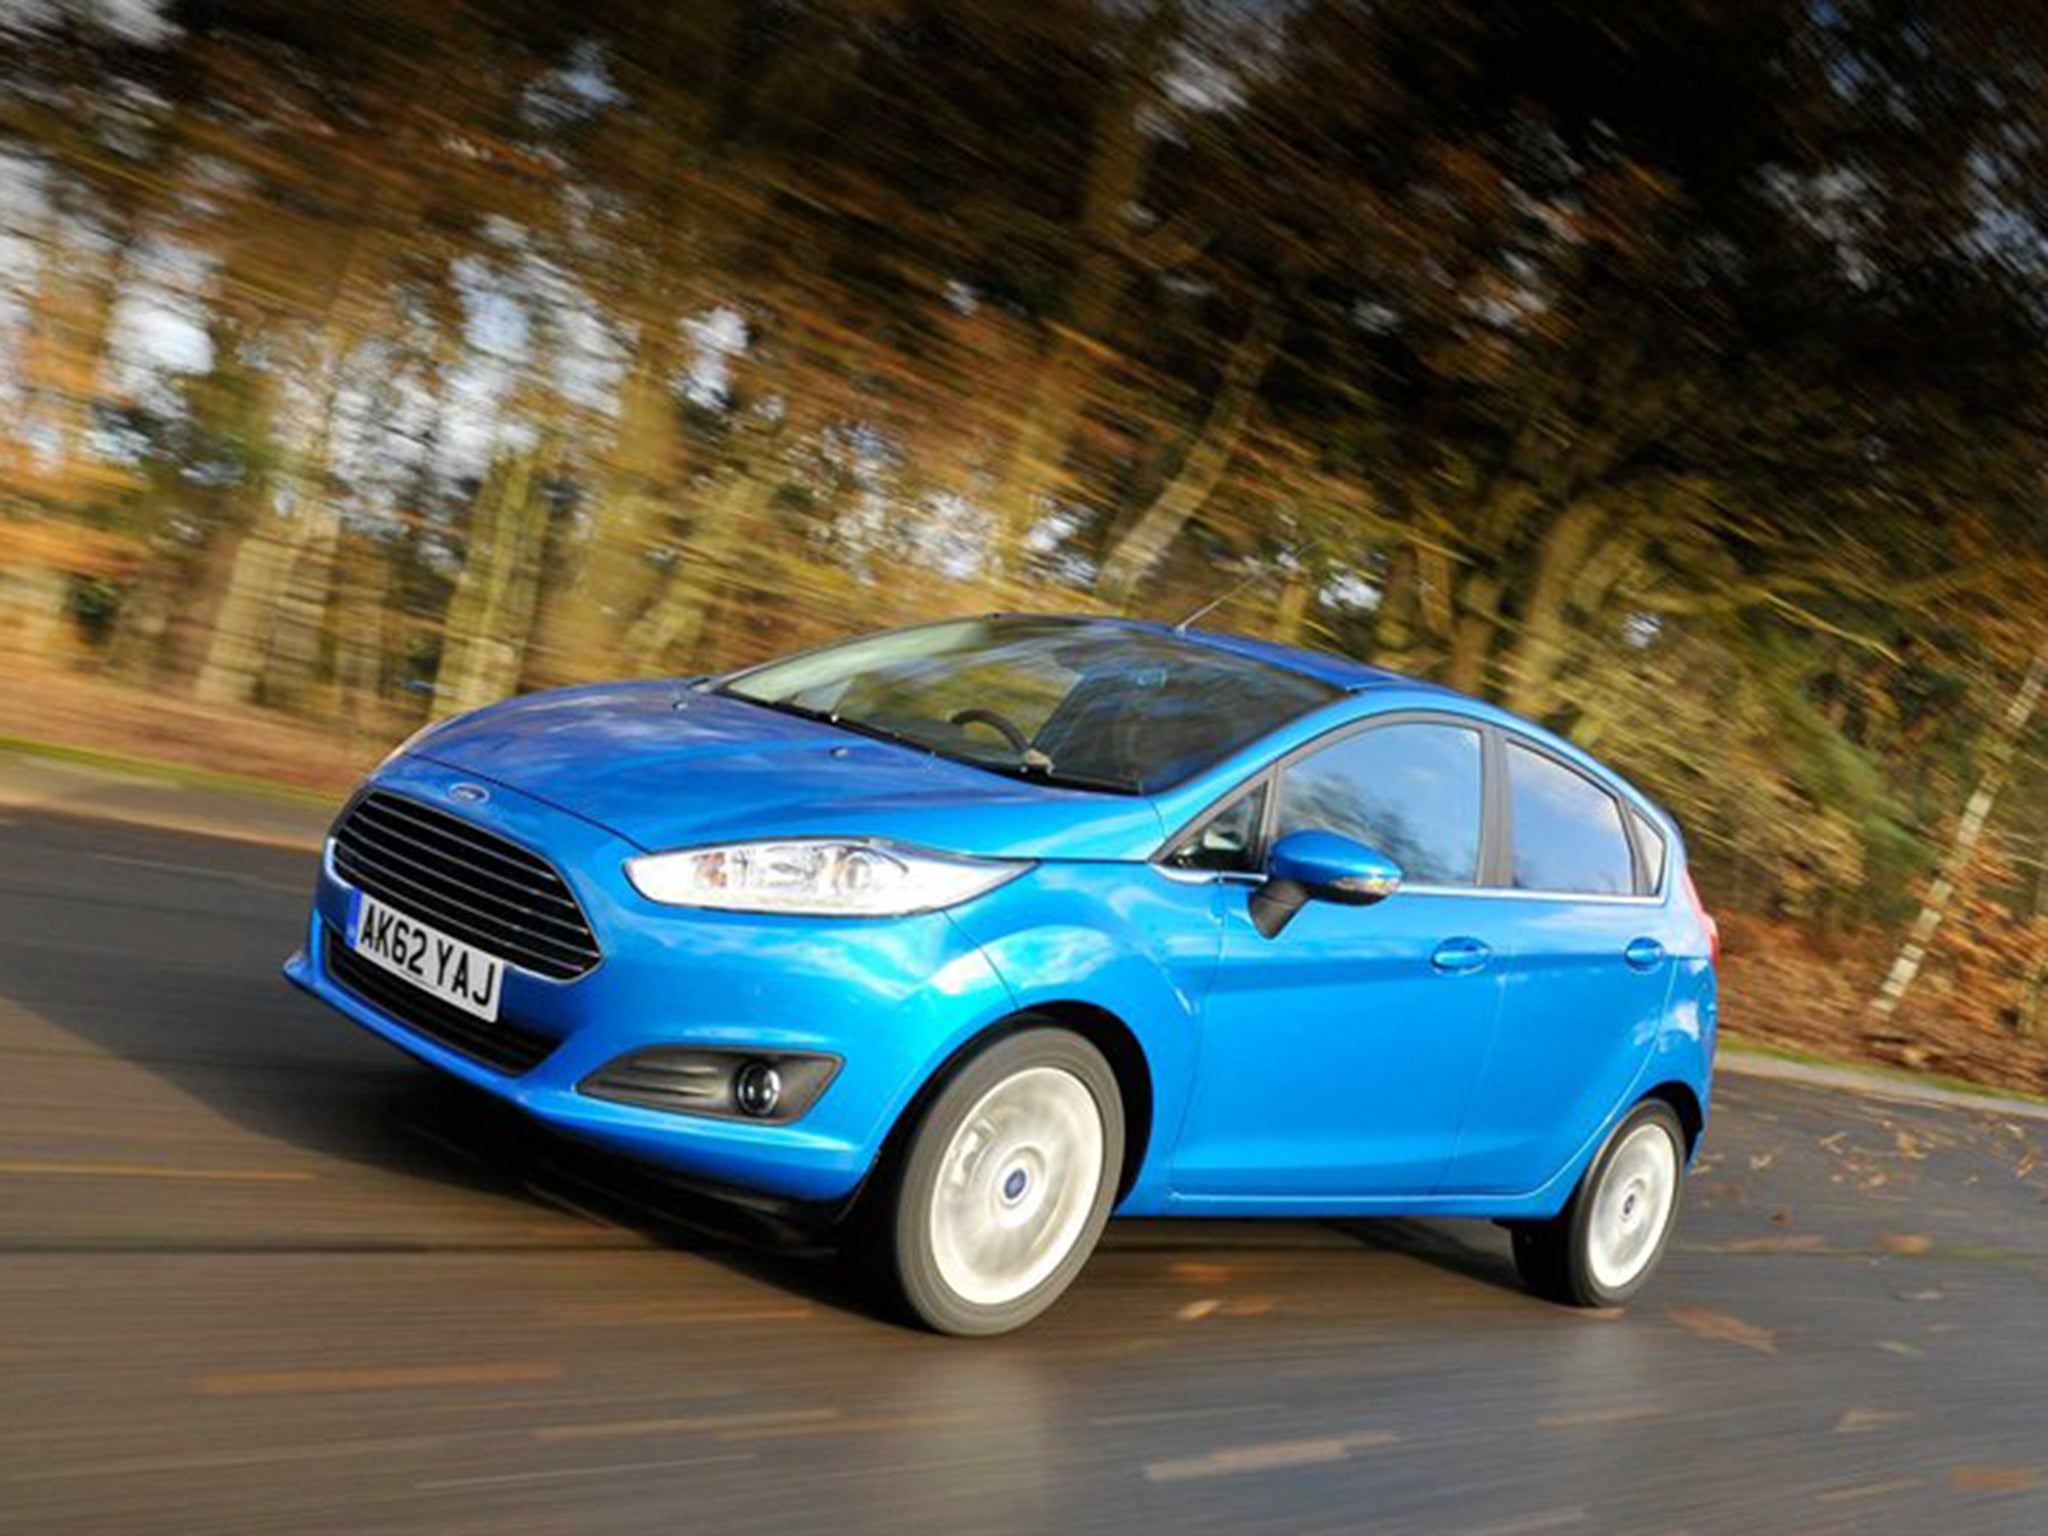 Ford Fiesta car review Few things this doesnu0027t do well u2013 and many that it does brilliantly | The Independent & Ford Fiesta car review: Few things this doesnu0027t do well u2013 and ... markmcfarlin.com